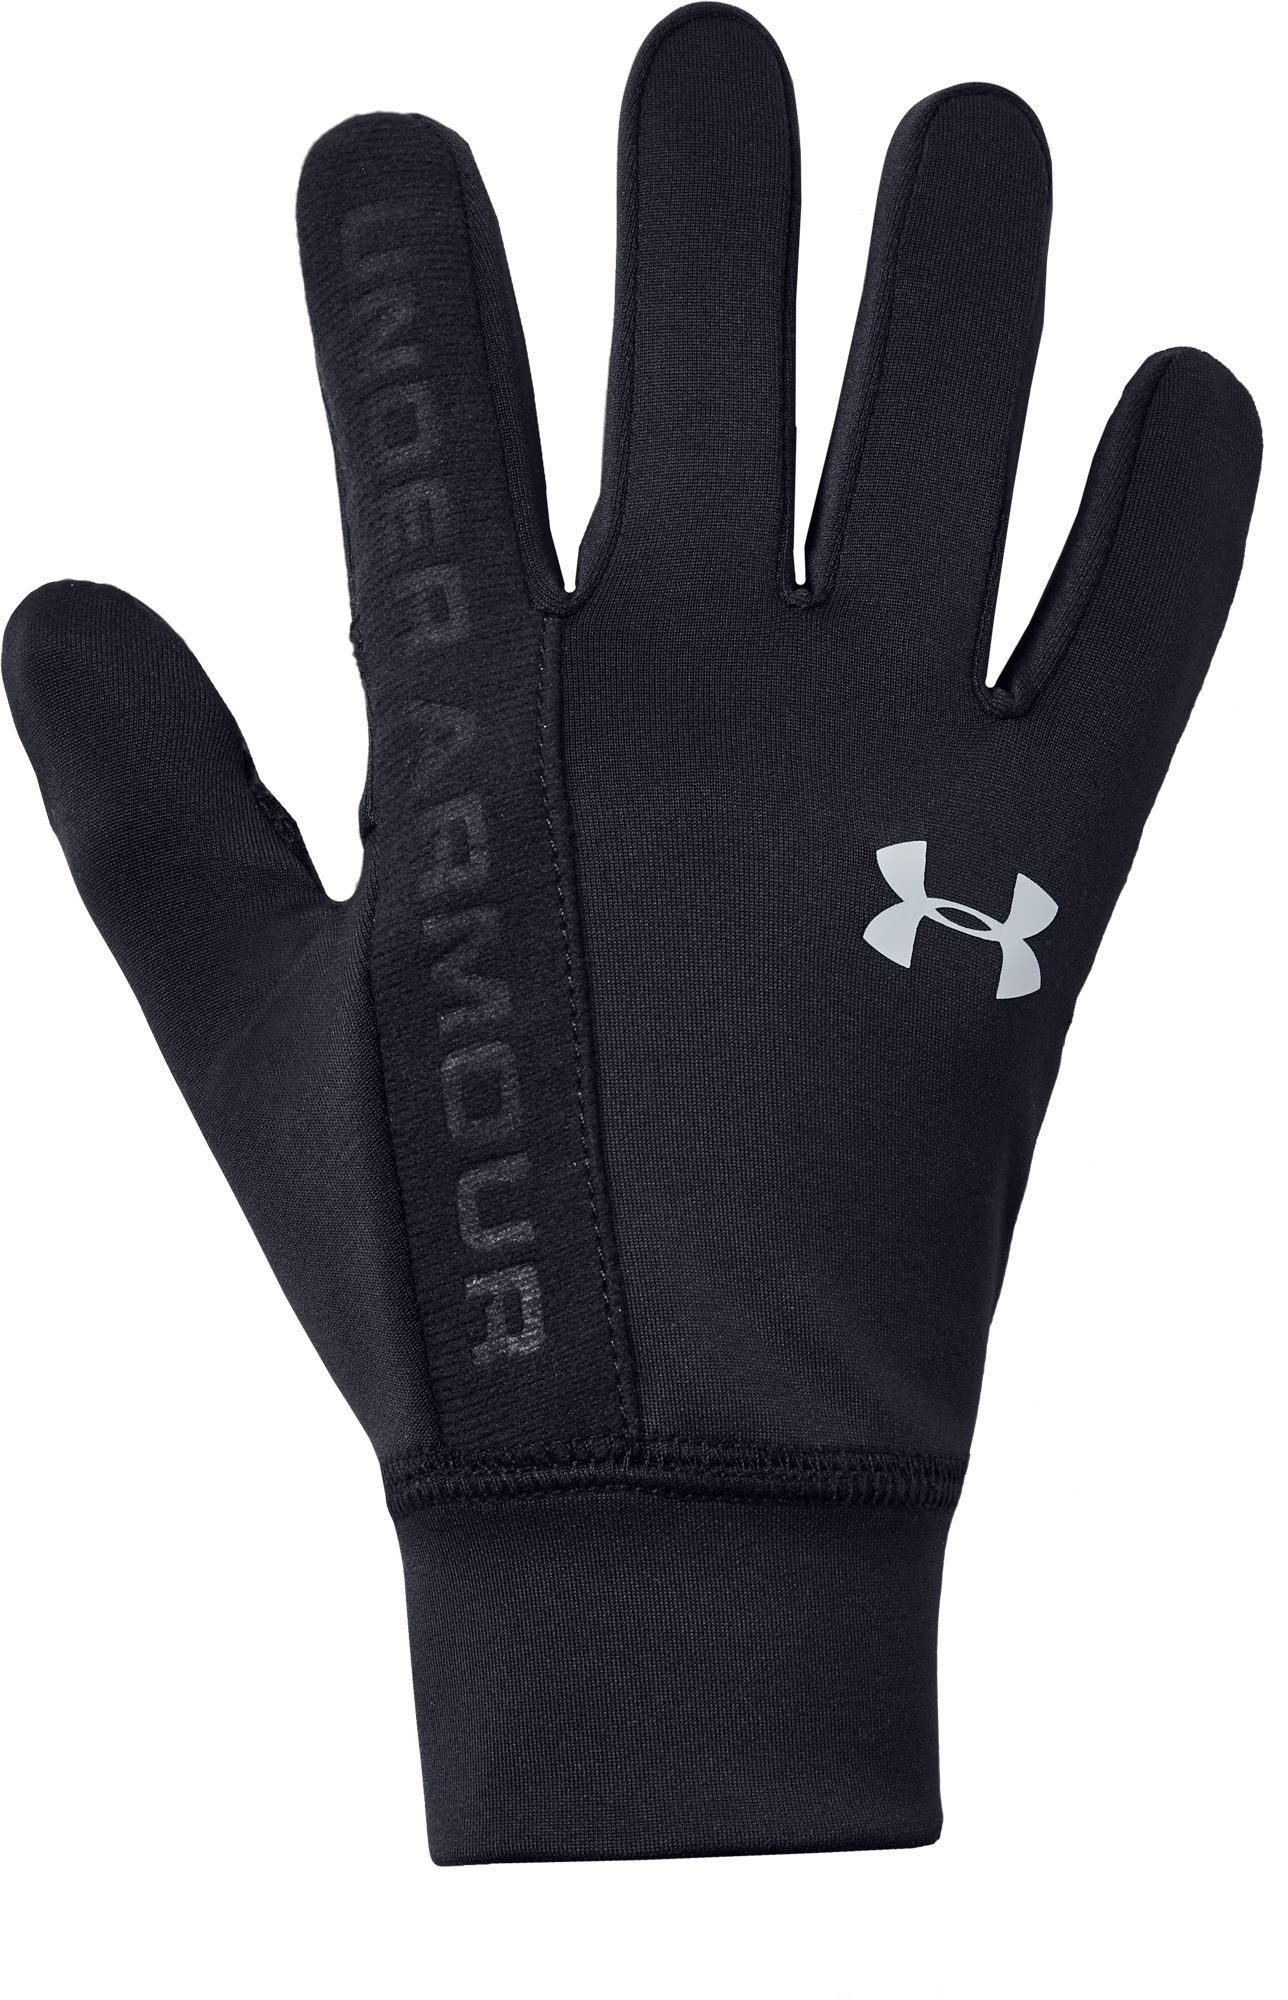 Under Armour Boy's Liner Gloves, Size: Small, Black